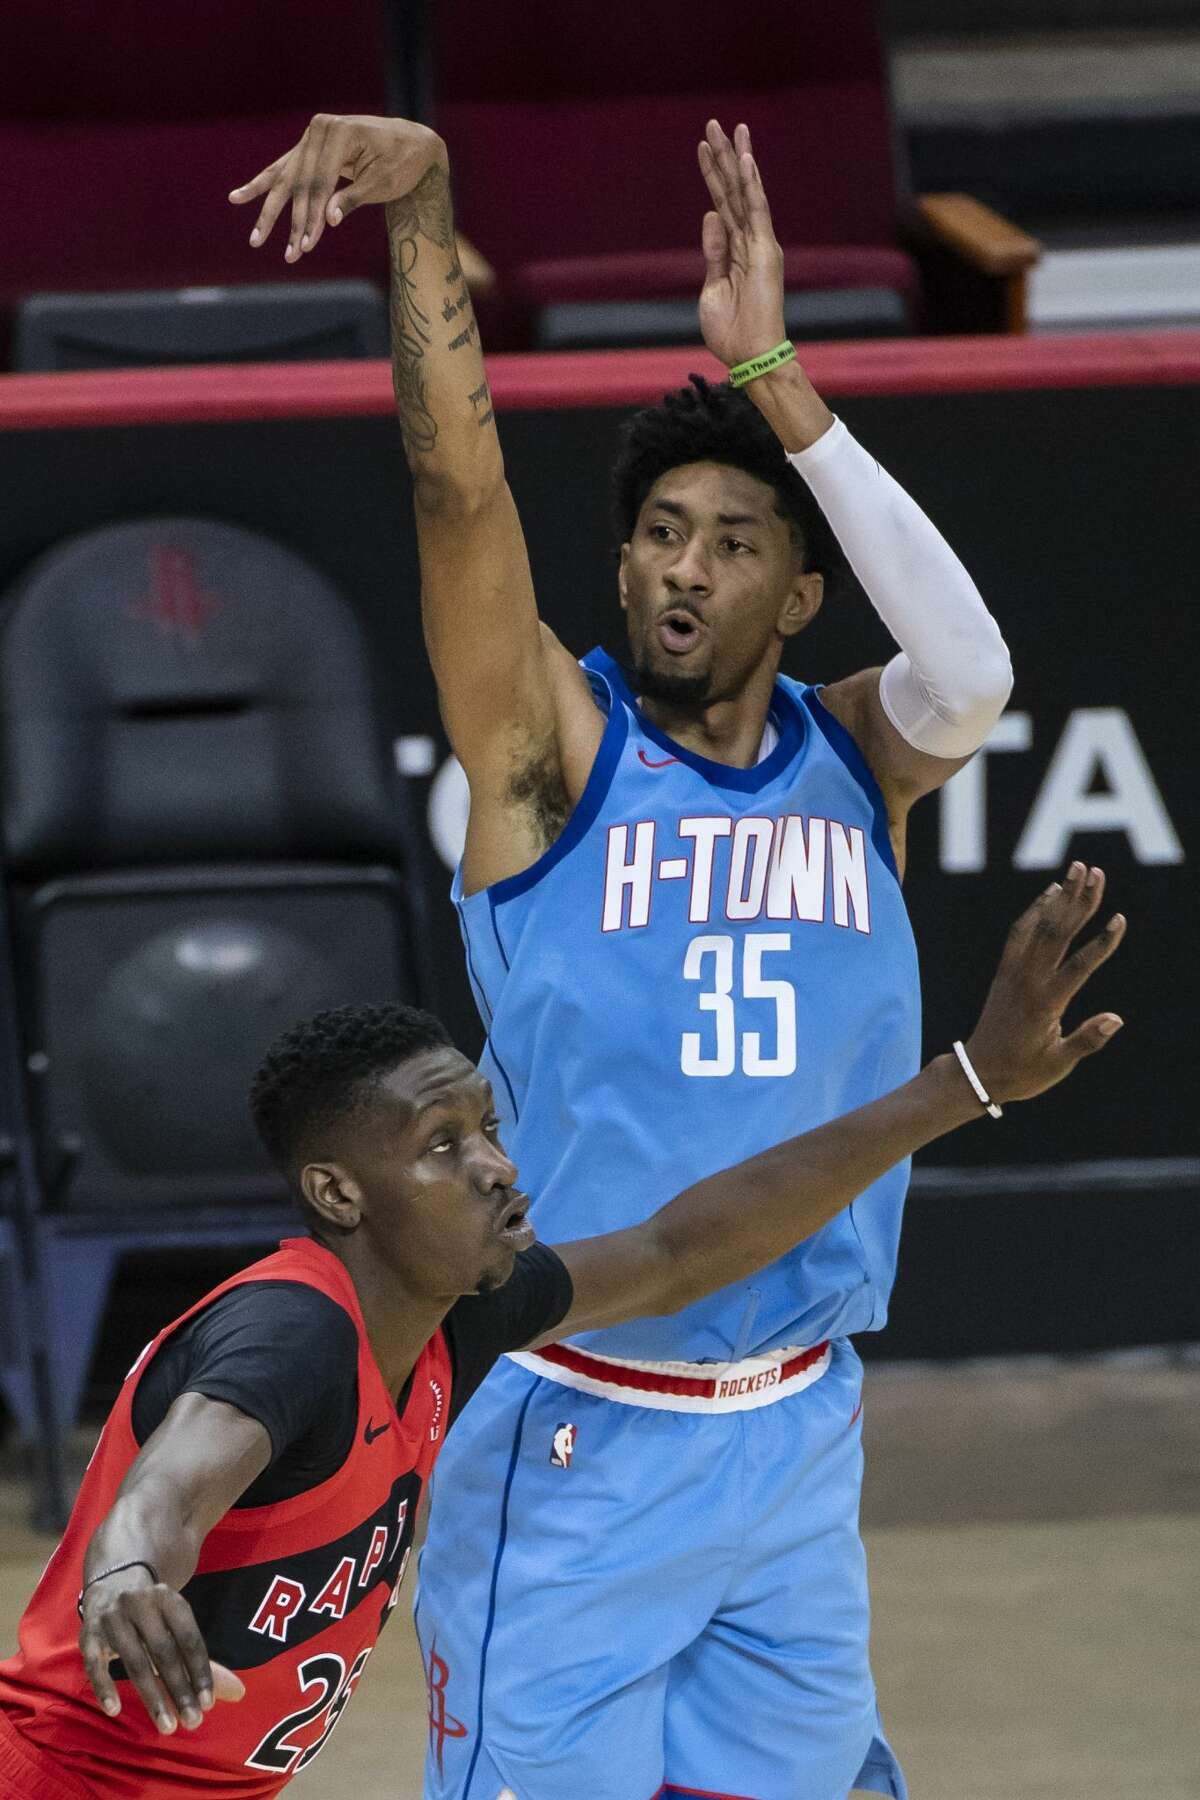 Houston Rockets center Christian Wood (35) shoots a three point shot over Toronto Raptors forward Chris Boucher (25) during the third quarter of an NBA game between the Houston Rockets and Toronto Raptors on Monday, March 22, 2021, at Toyota Center in Houston.